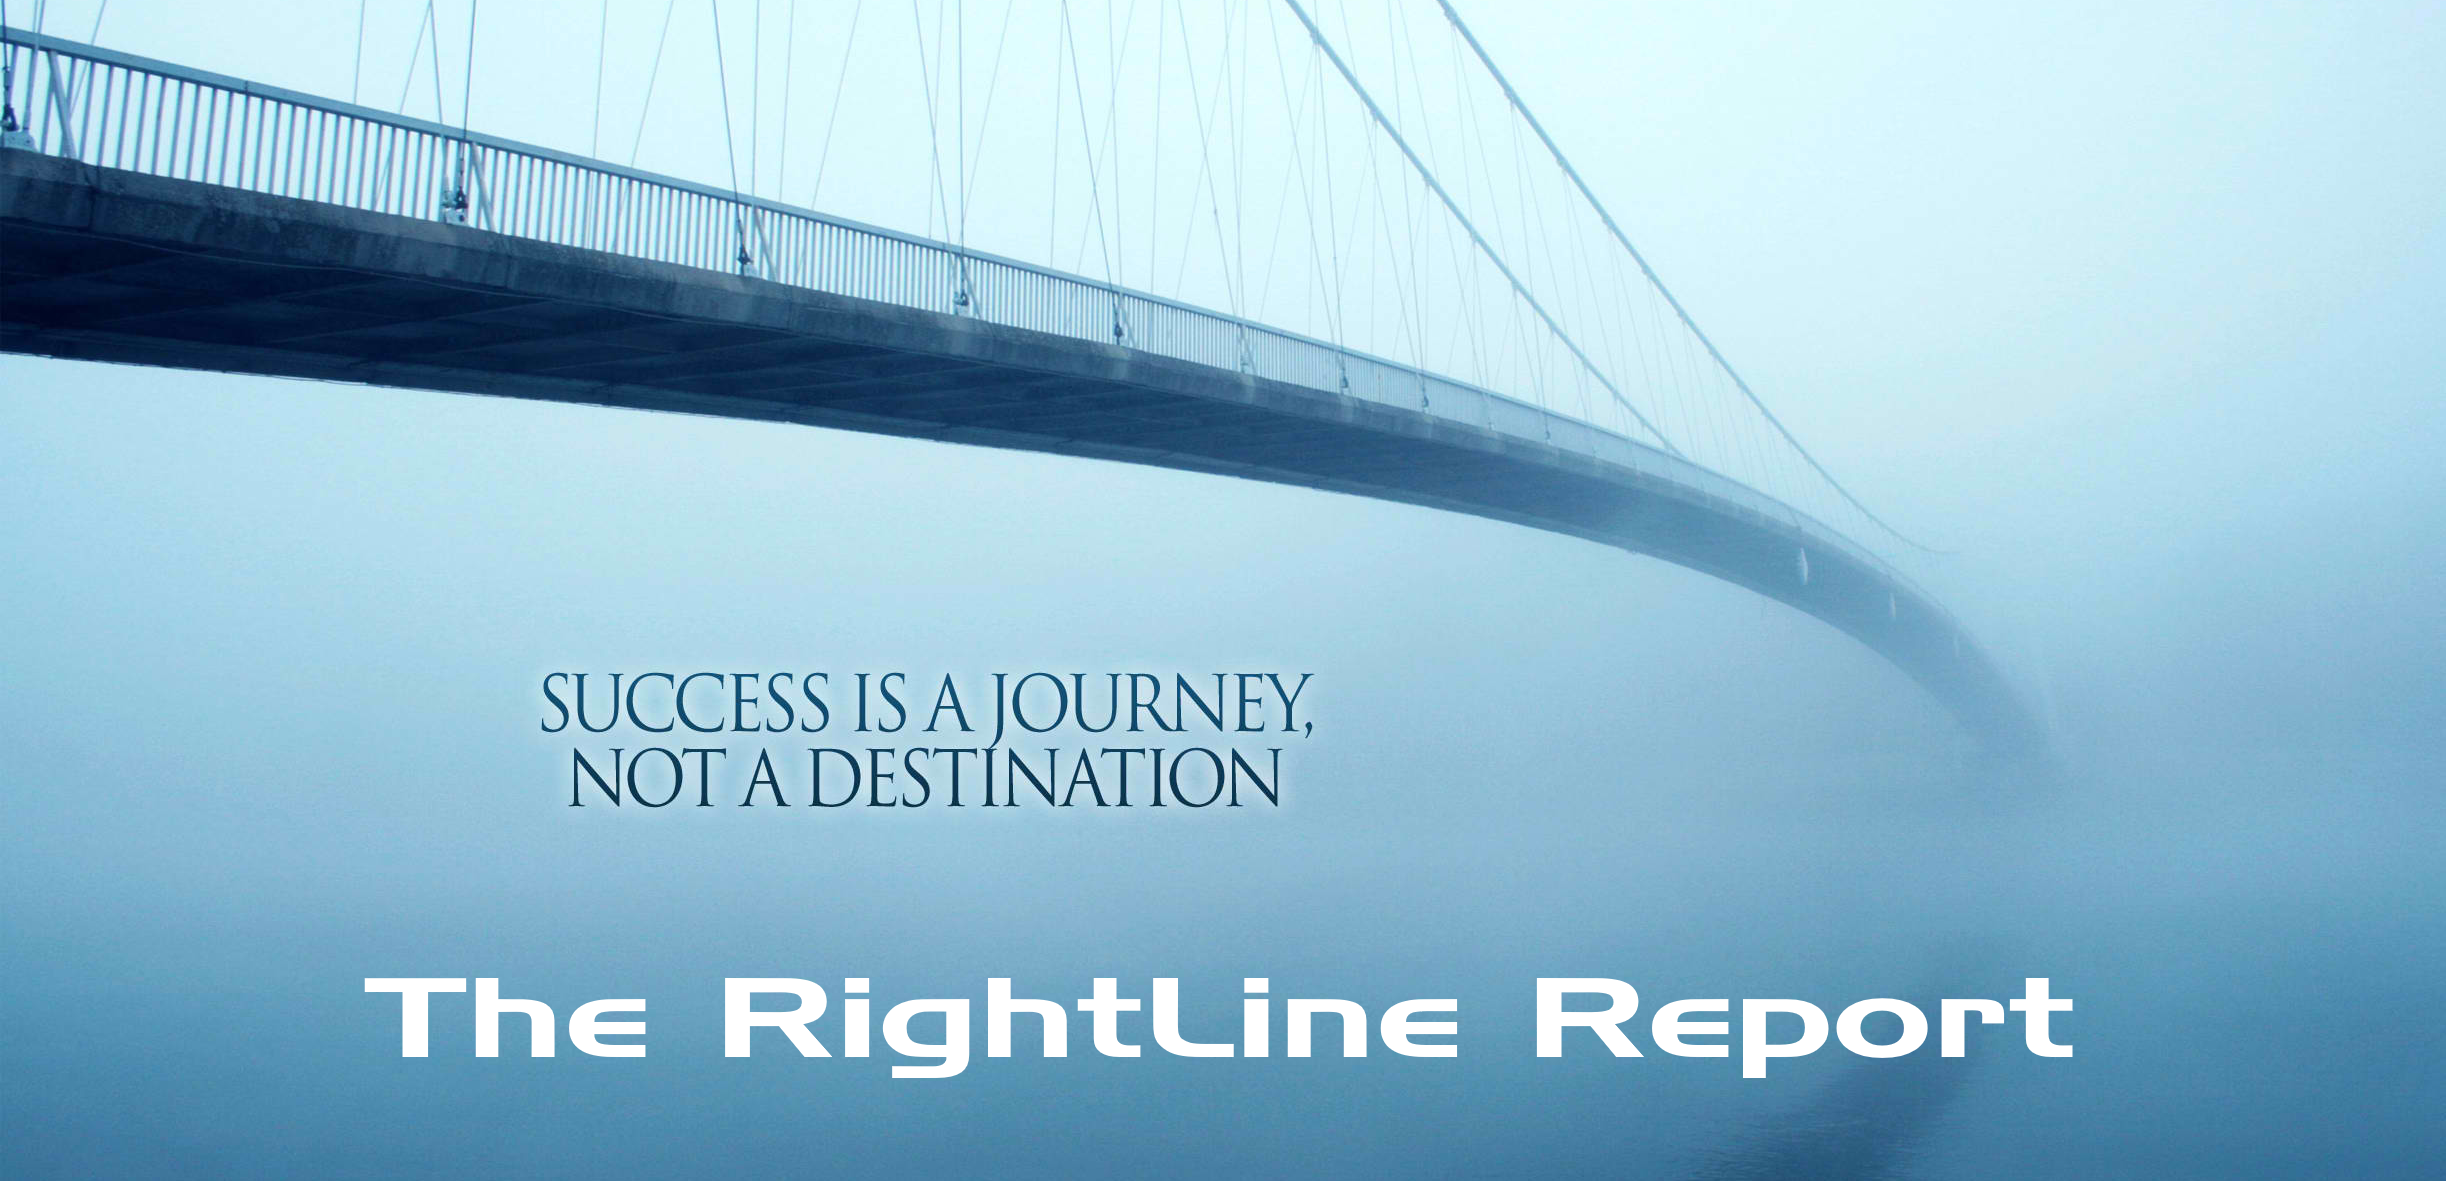 A beautiful suspended bridge in a foggy mist conveys the concept that online stock trading is a journey instead of a destination.